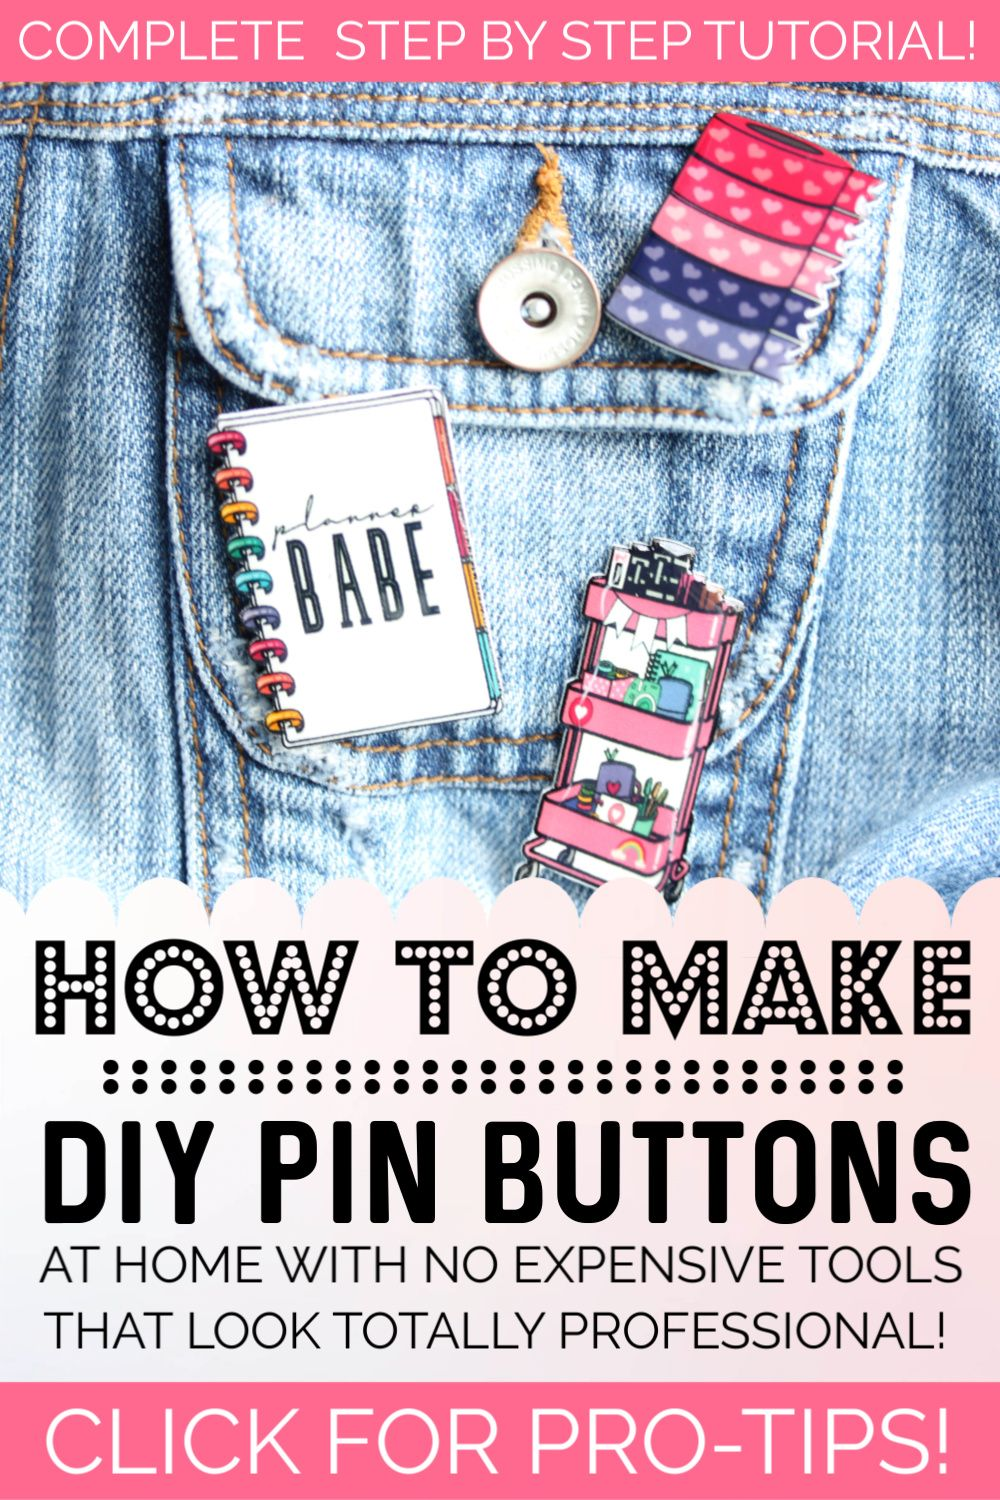 How To Make Pins At Home That Look Totally Professional Diy Buttons Make Your Own Pins Make Your Own Buttons